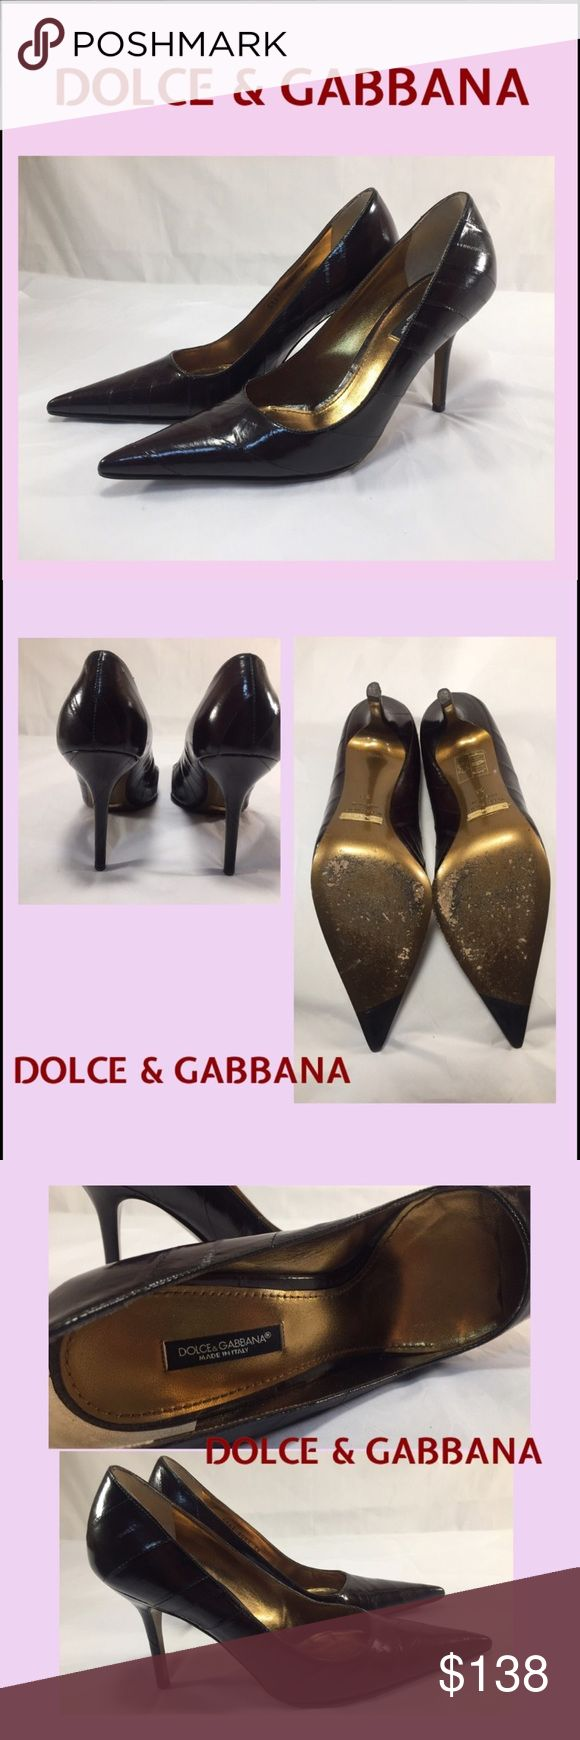 "DOLCE & GABBANA Deep Burgundy Heels DOLCE & GABBANA Deep Burgundy Heels in Ladies Size 38. Beautiful preowned condition with slight to moderate wear to soles, photographed. Heel caps and uppers look fabulous and shoes are in great condition. Heel is 3.75"". Orig. $485. Dolce & Gabbana Shoes Heels"